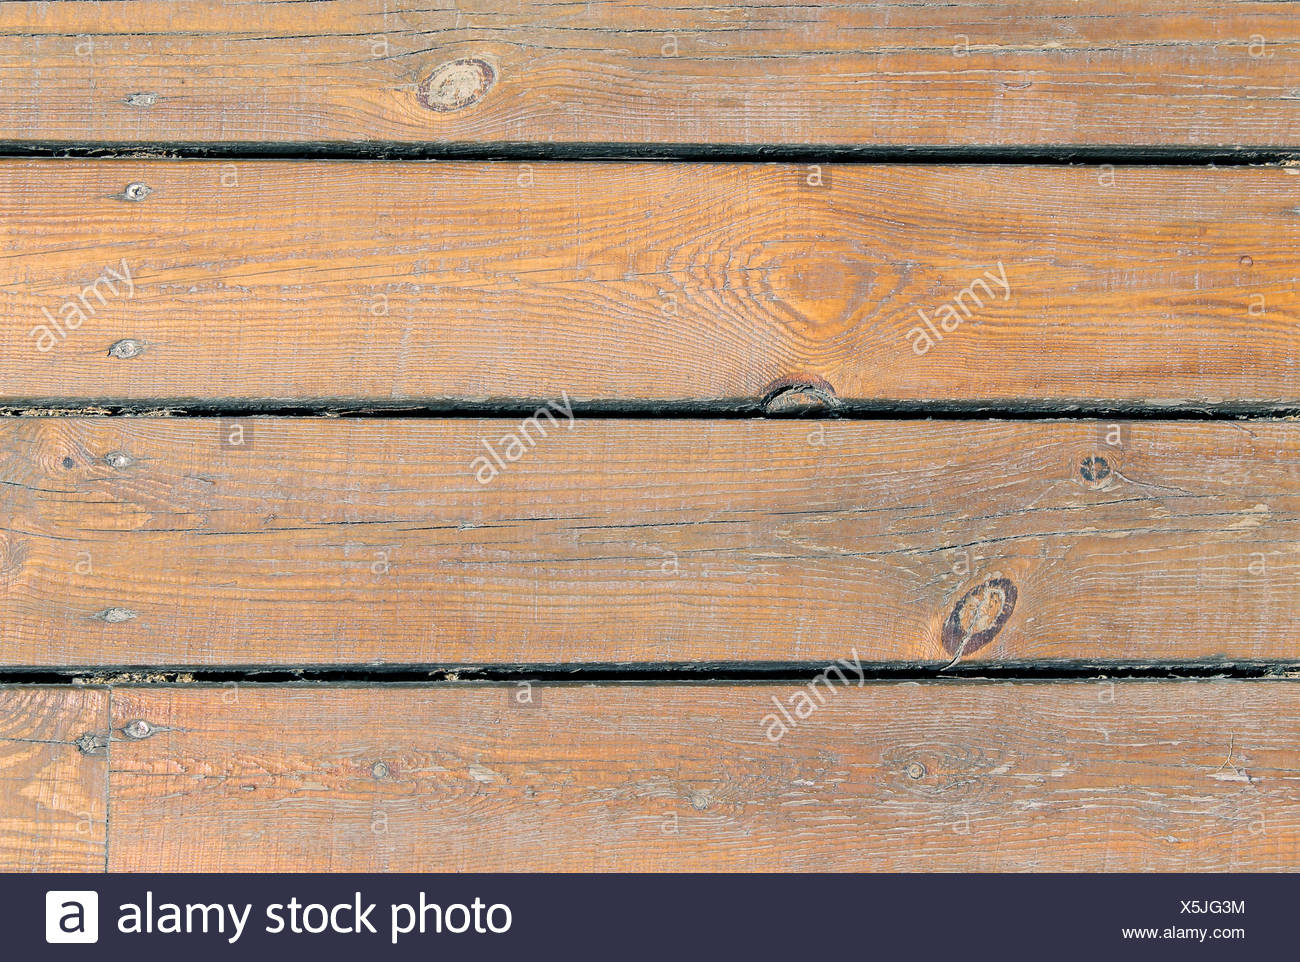 rough horizontal near surface planks nobody uneven wooden textured backdrop background textures grains grainy flooring - Stock Image